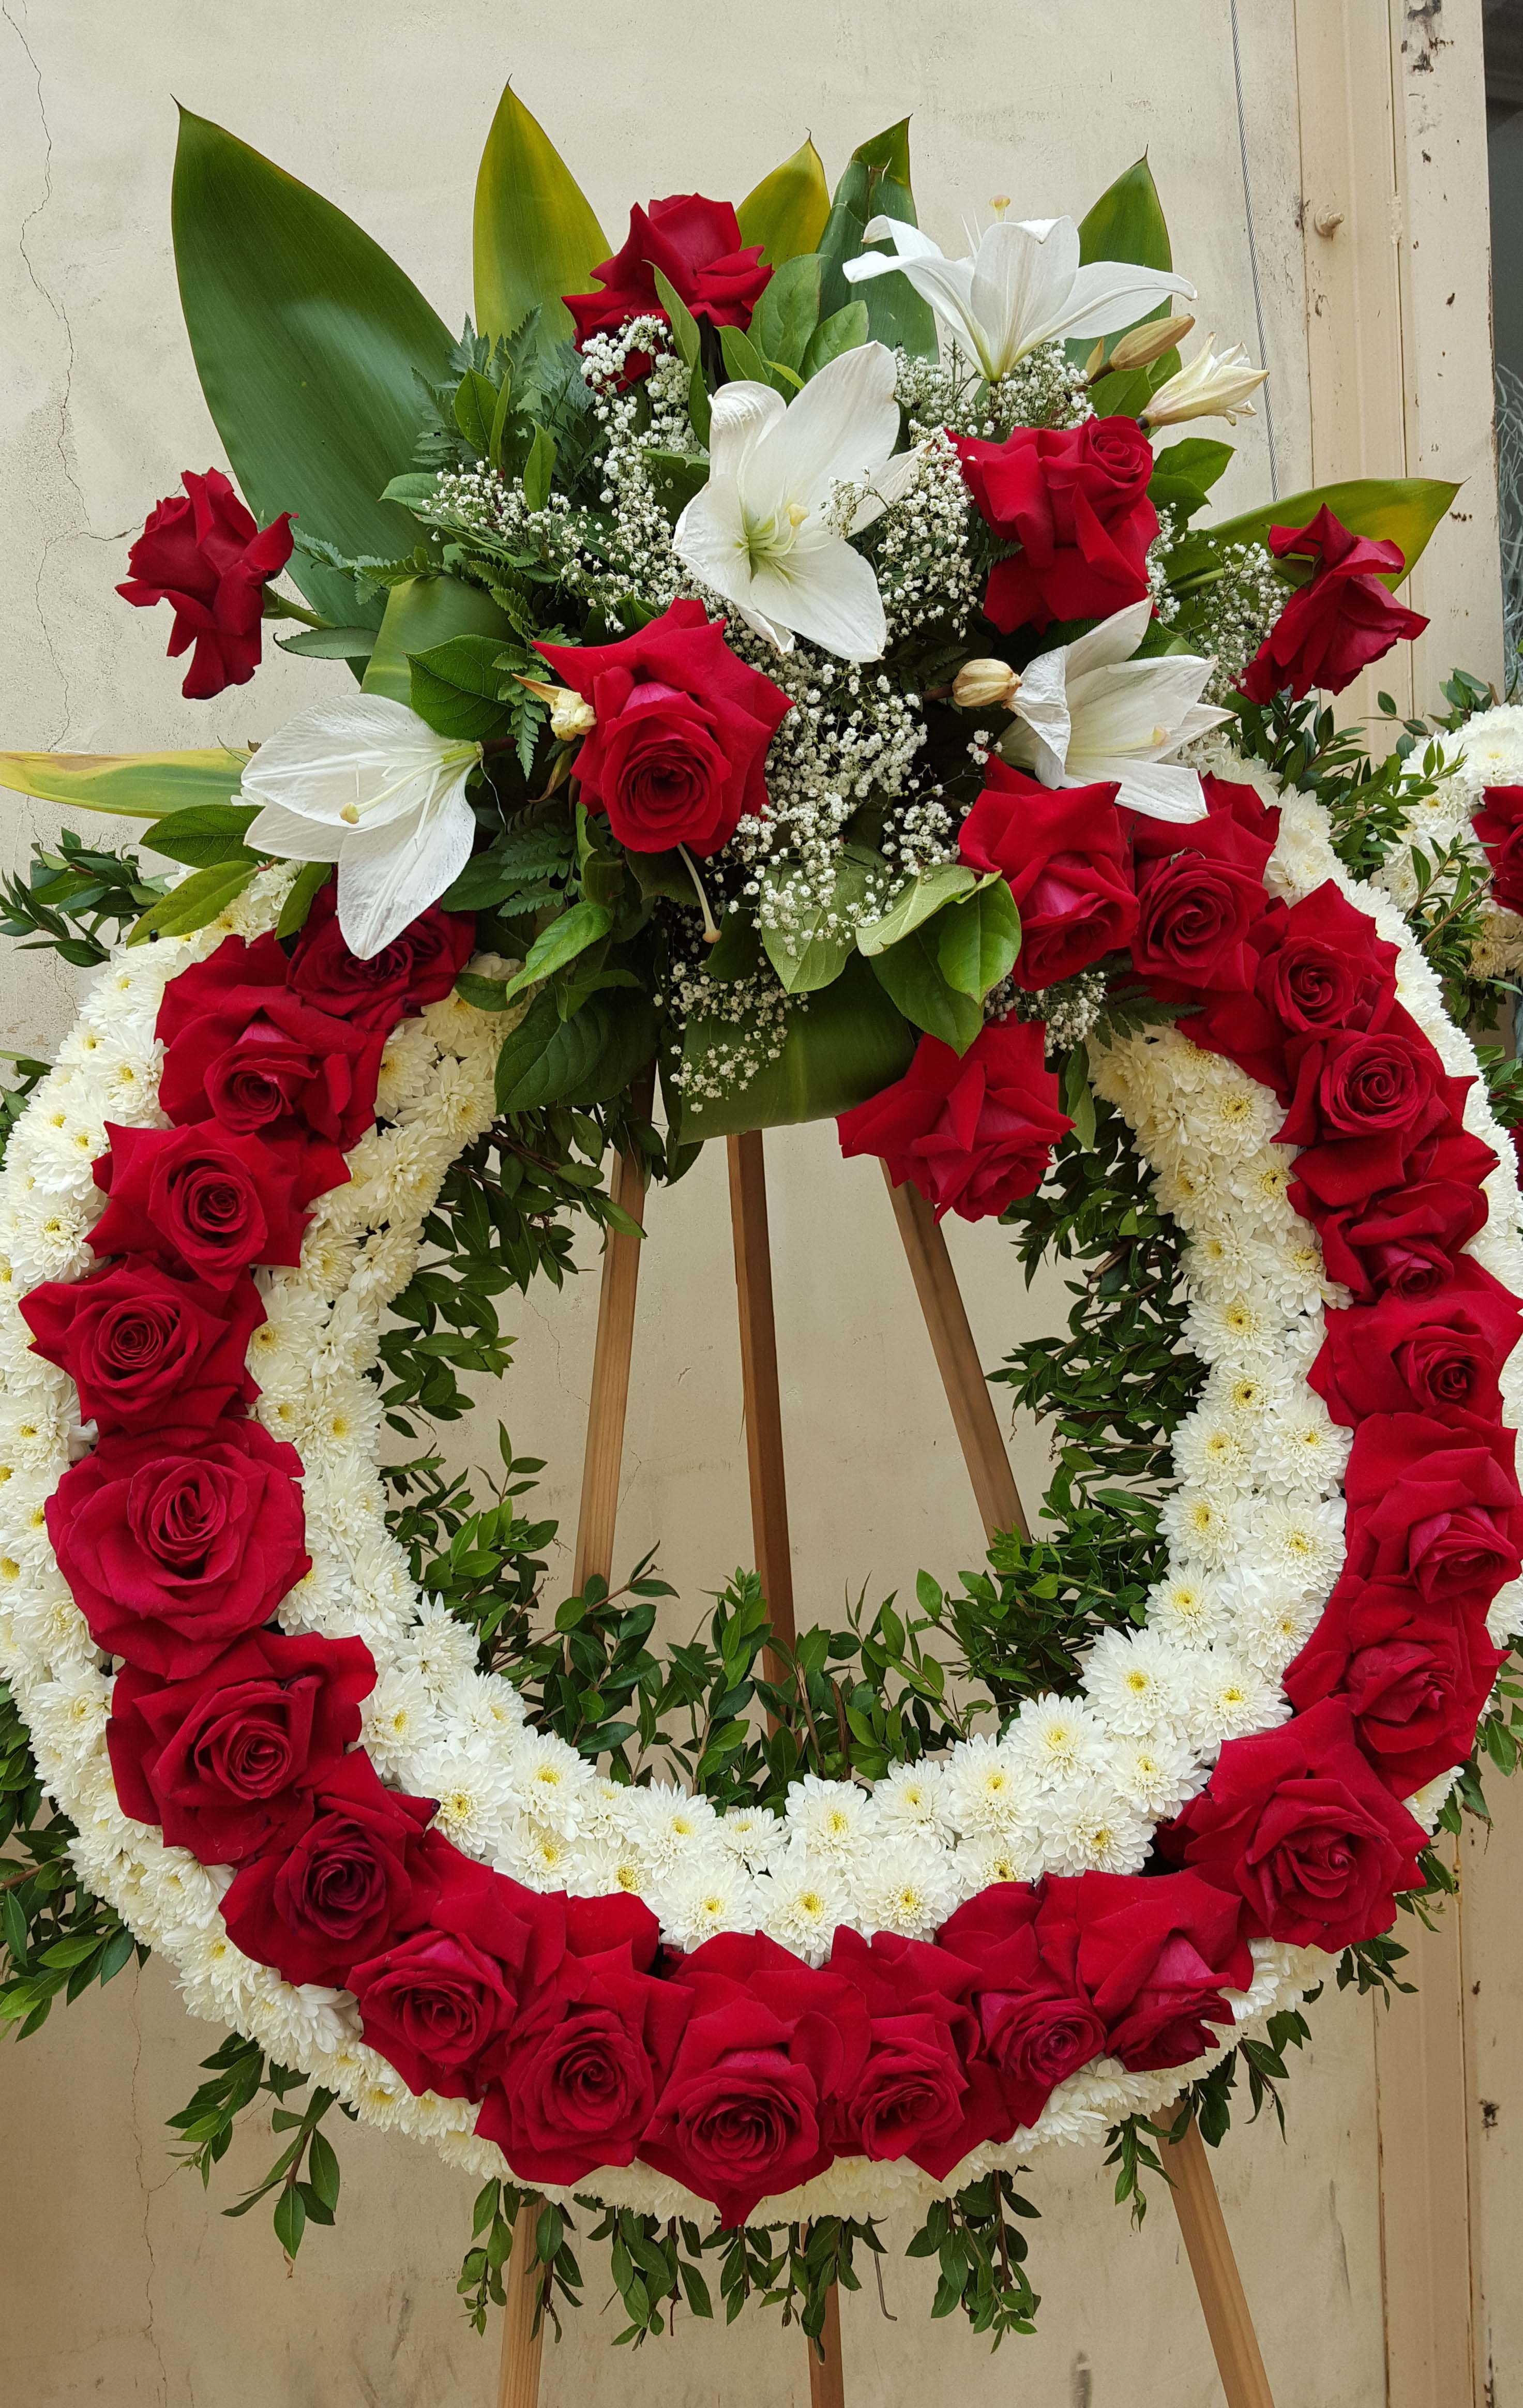 Cfm gives tips to buy cheap funeral flowers in las flower district do it yourselfers find affordable funeral wreathes at california flower mall heart shaped tribute flowers izmirmasajfo